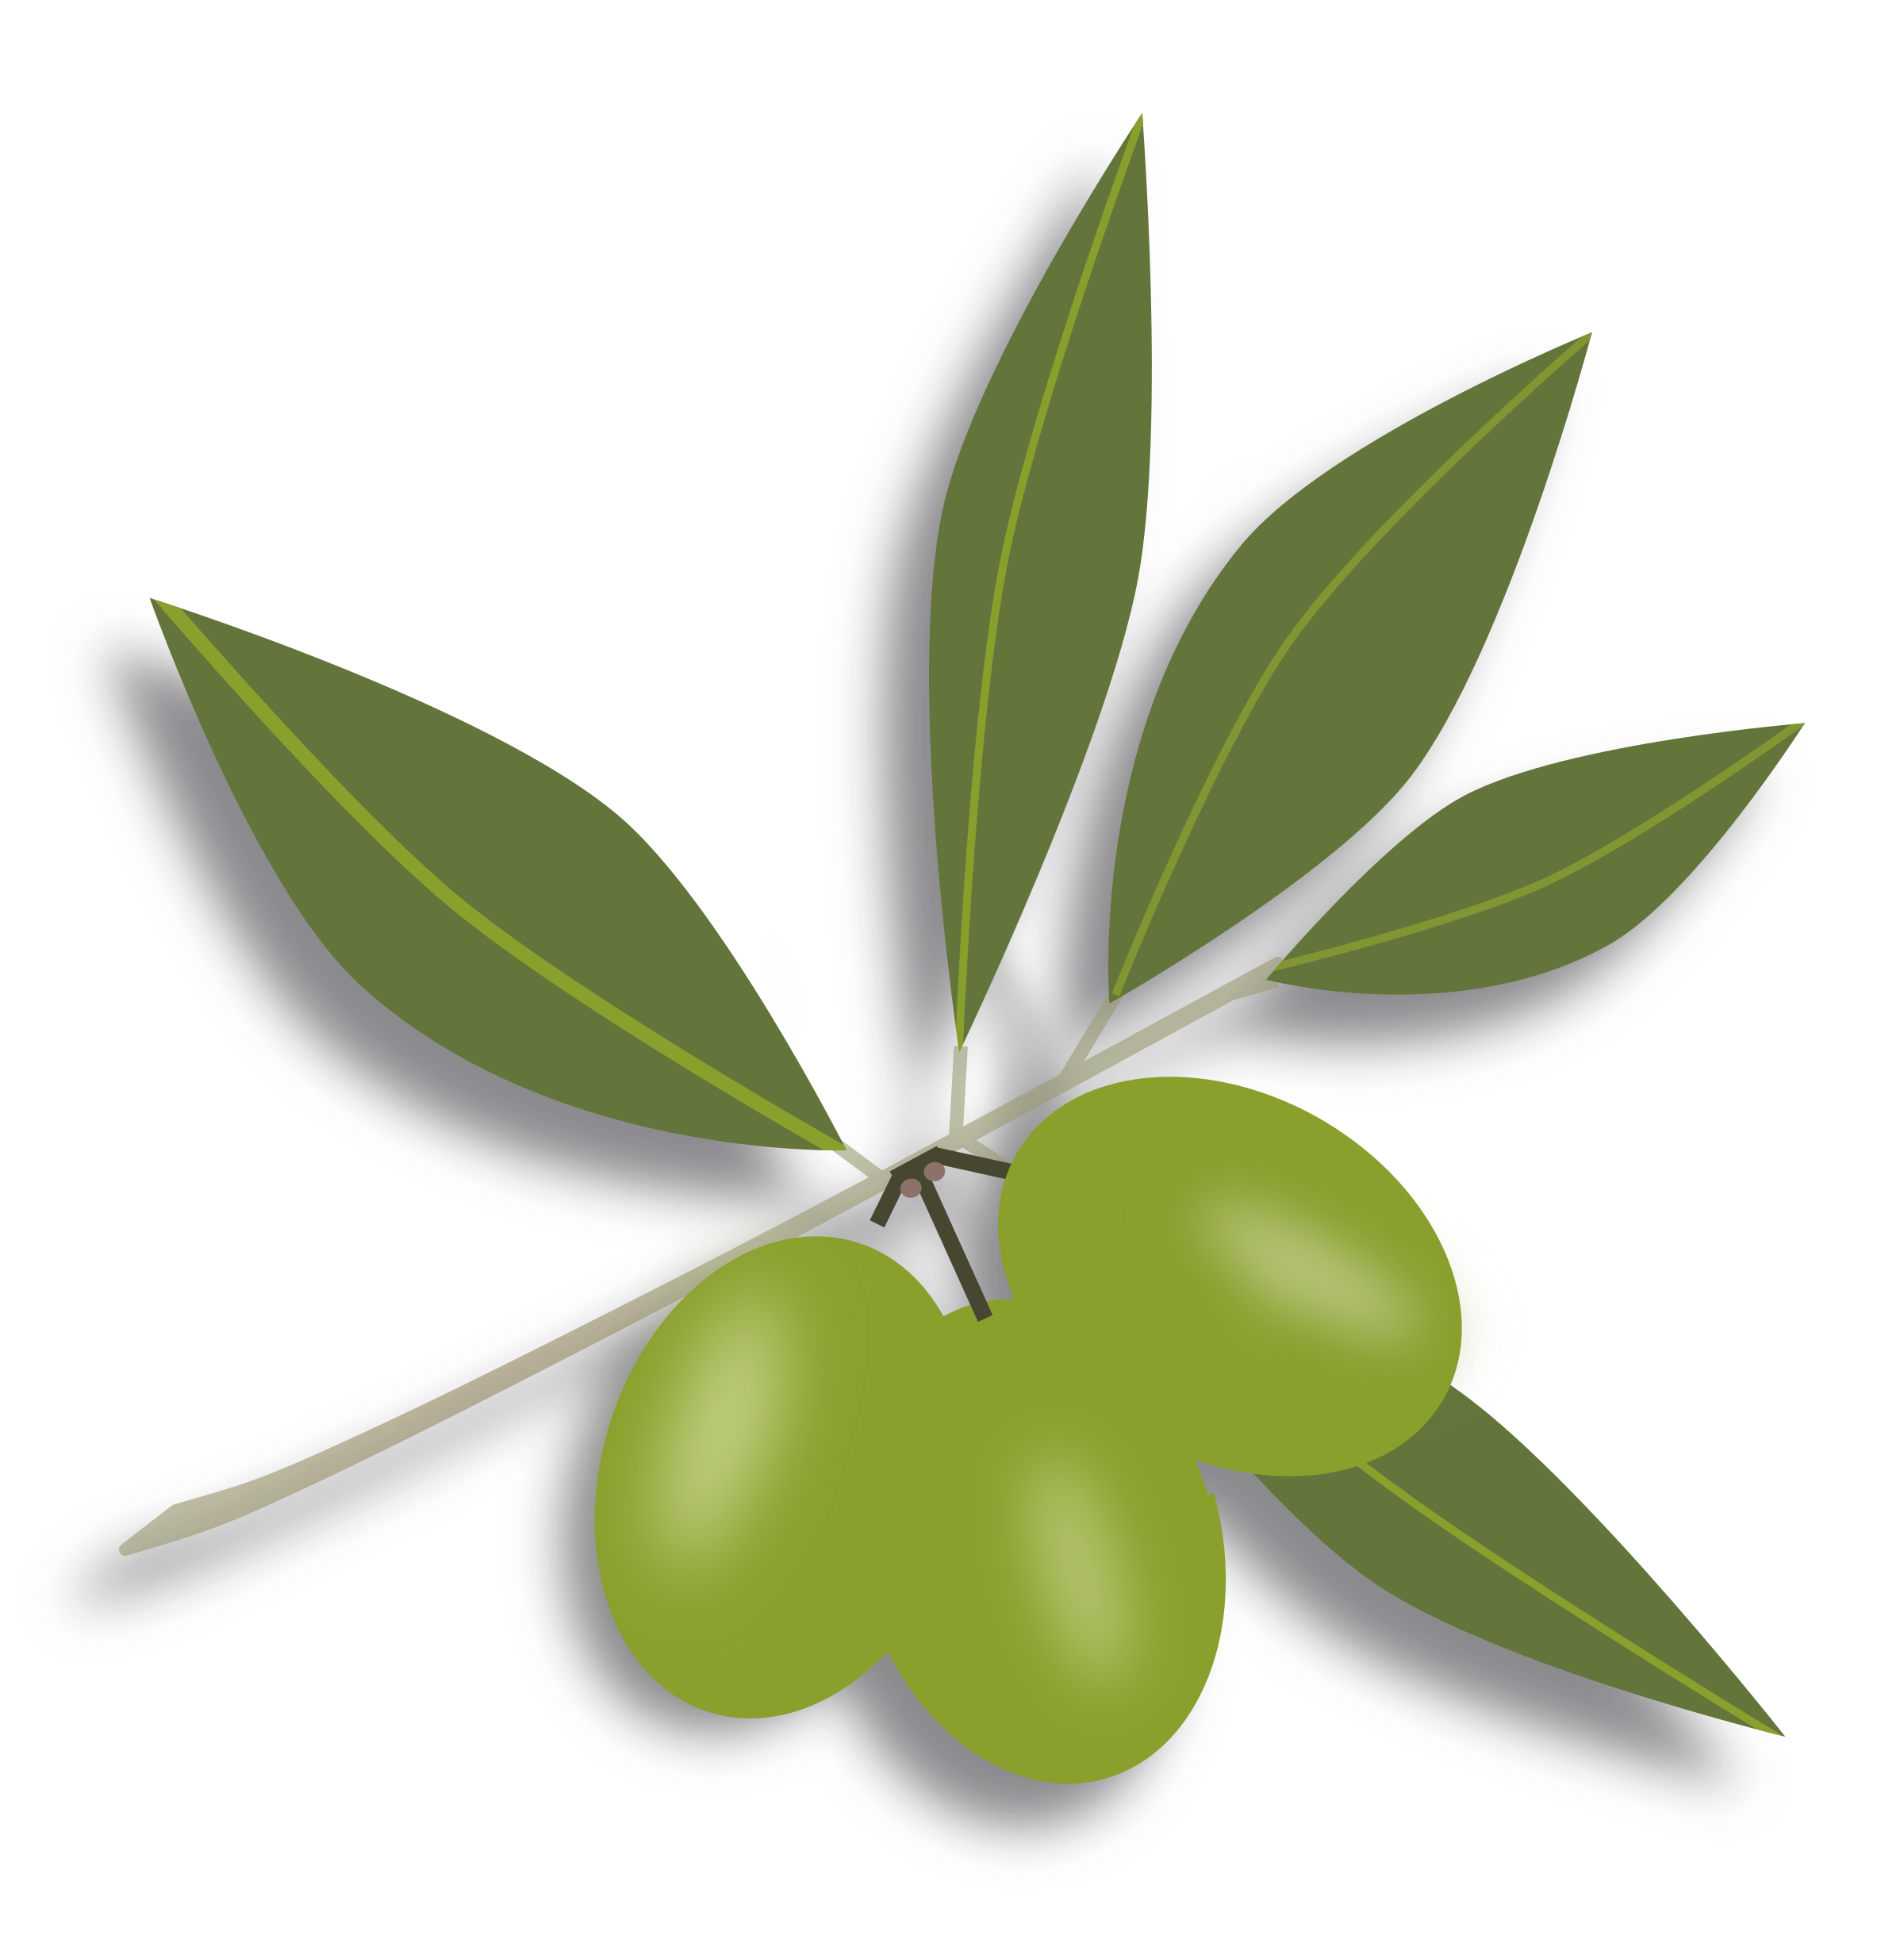 Olives Png Available In Different Size image #40579